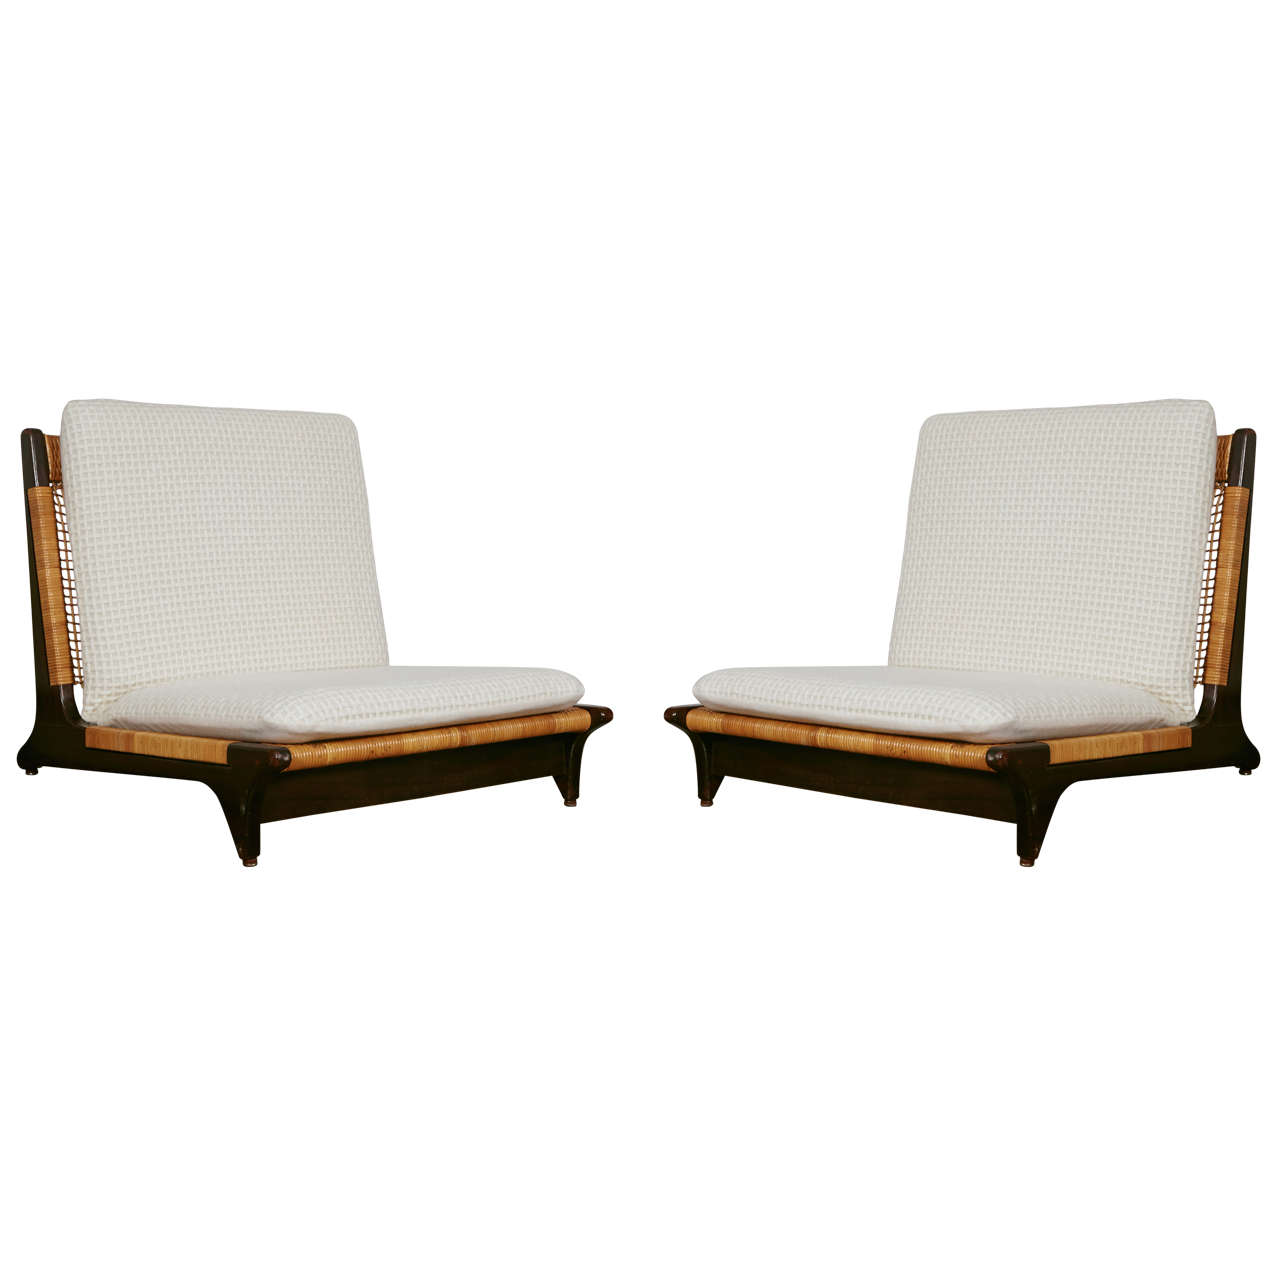 Superieur Pair Of Hans Olsen Low Chairs For Sale